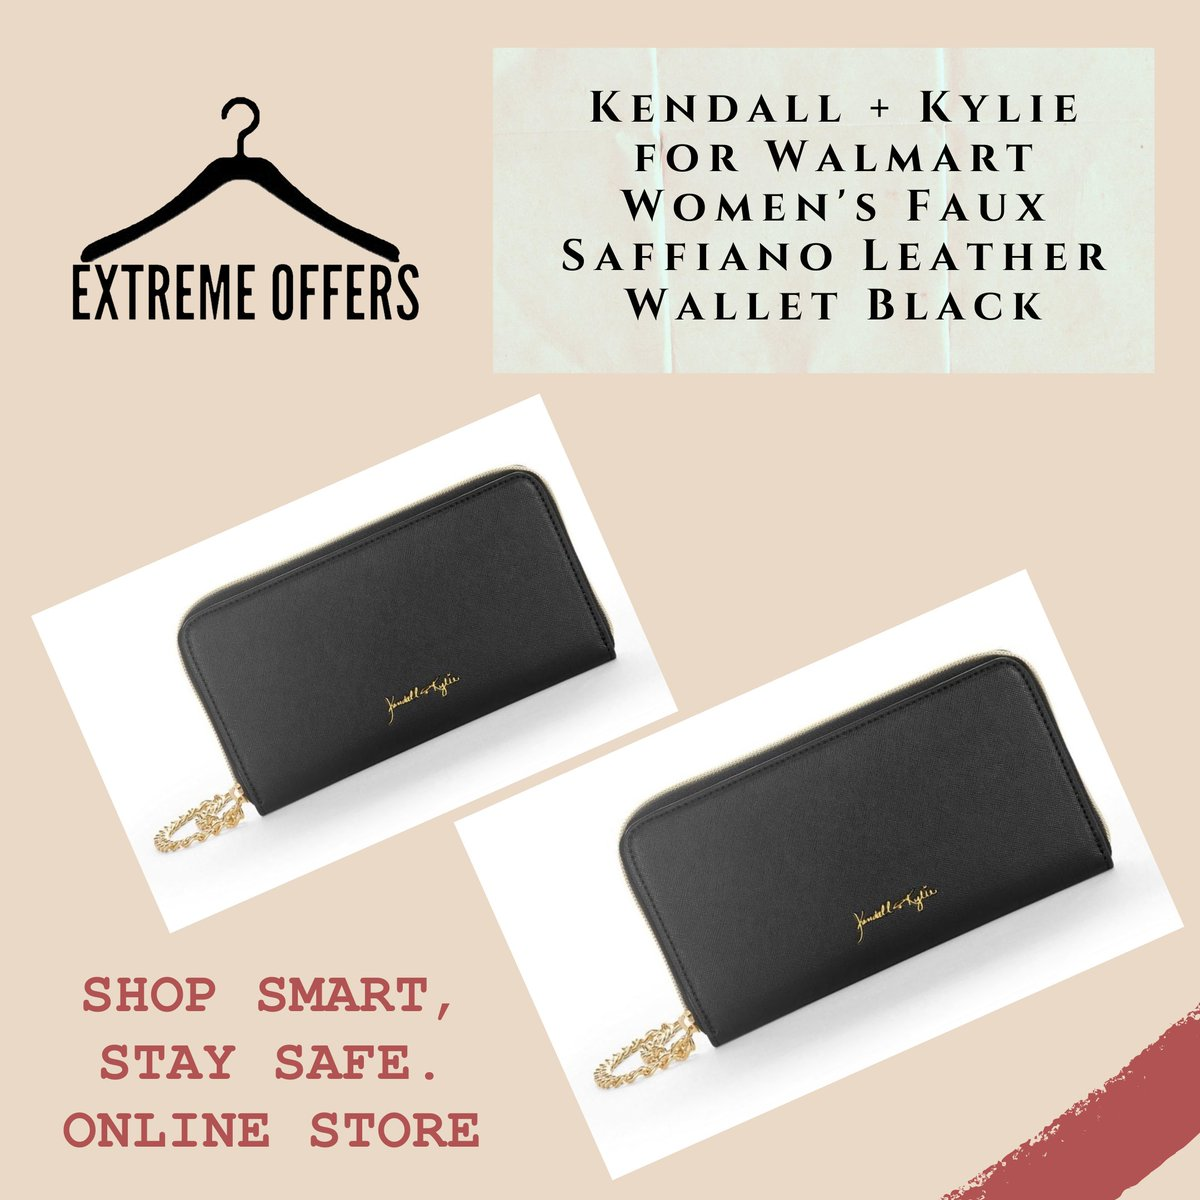 Kendall + Kylie for Walmart Women's Faux Saffiano Leather Wallet Black https://fireinsect.com/kendall-kylie-for-walmart-womens-faux-saffiano-leather-wallet-black-closet/?fbshop=1 … Visit our Catalog on Facebook https://facebook.com/pg/1952-478260969649267/shop/ … #extremeoffers #usa #Florida #fortlauderdale #onlineshop #paypal #tiendaonline #gift #fashion #follo4folloback #followus #Walletpic.twitter.com/KkYMtuTGMe